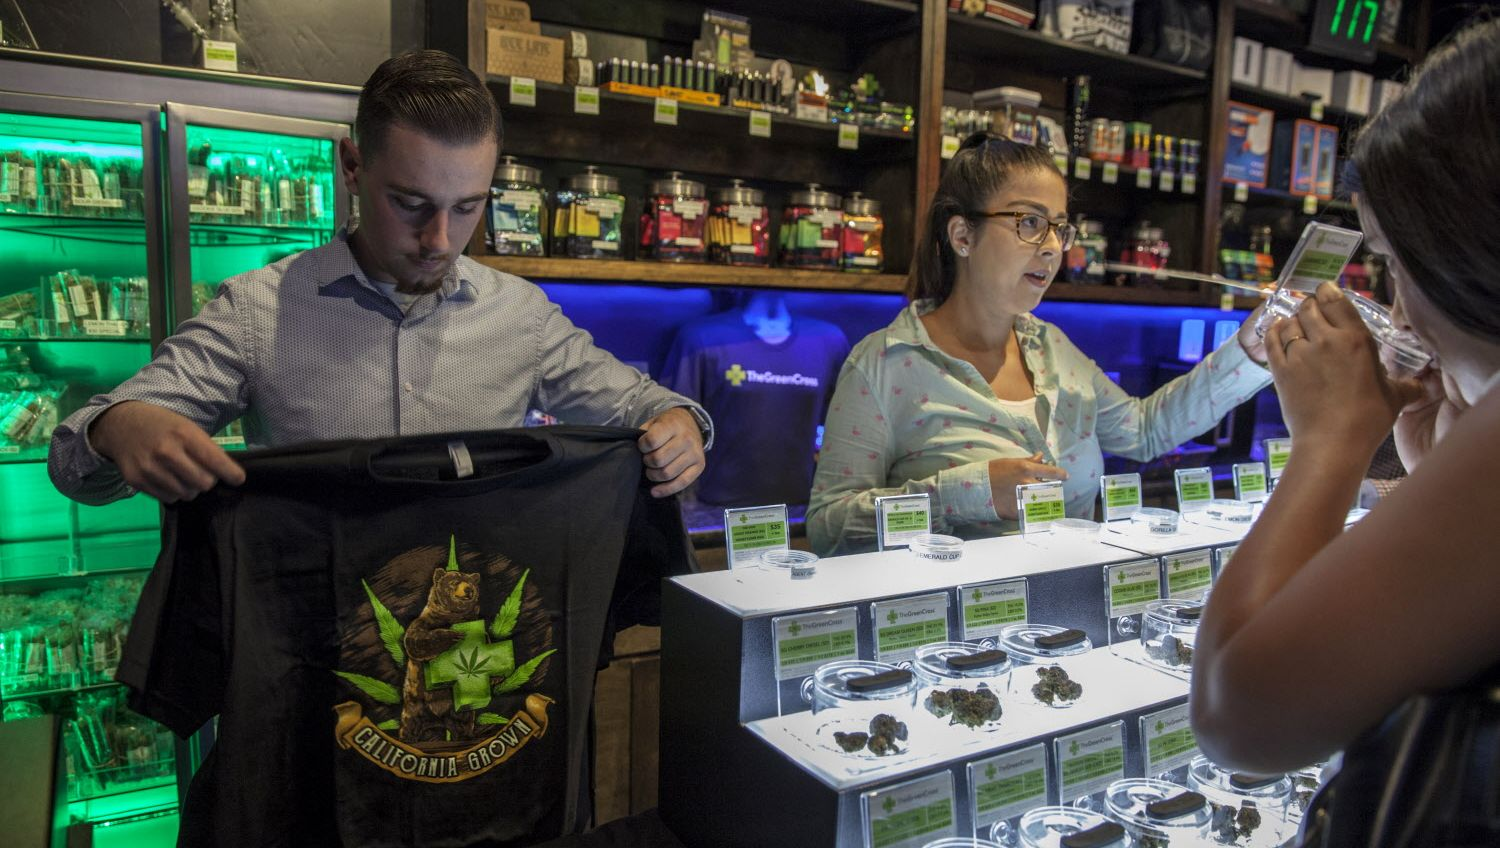 Medical cannabis and merchandise being sold at The Green Cross in San Francisco in 2017. San Francisco will miss the January 1 starting date for recreational sales.